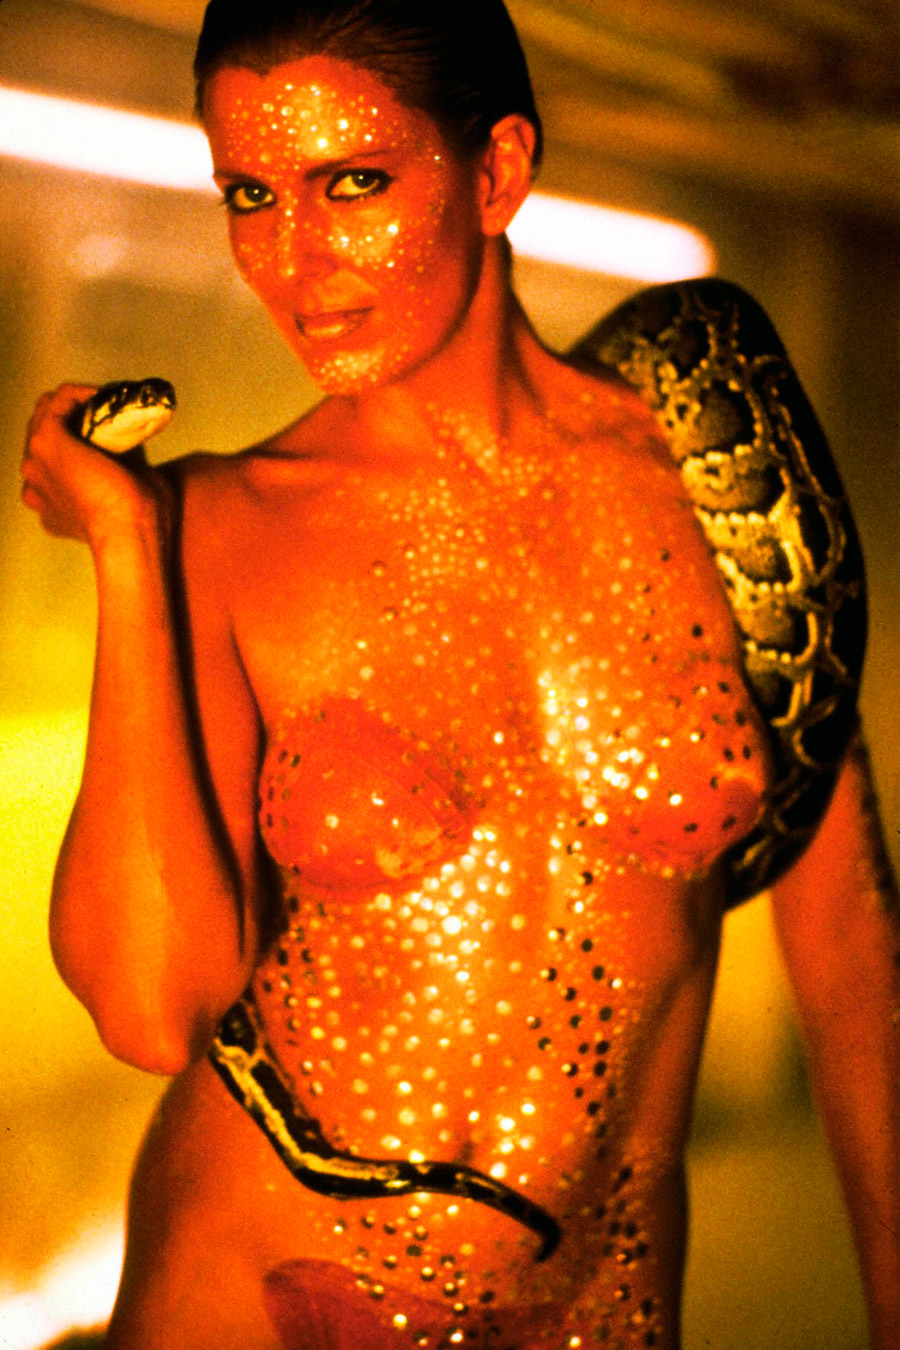 The Replicant Zhora (Joanna Cassidy) never goes out without her snake-bot, in Ridley Scott's movie Blade Runner (1982)